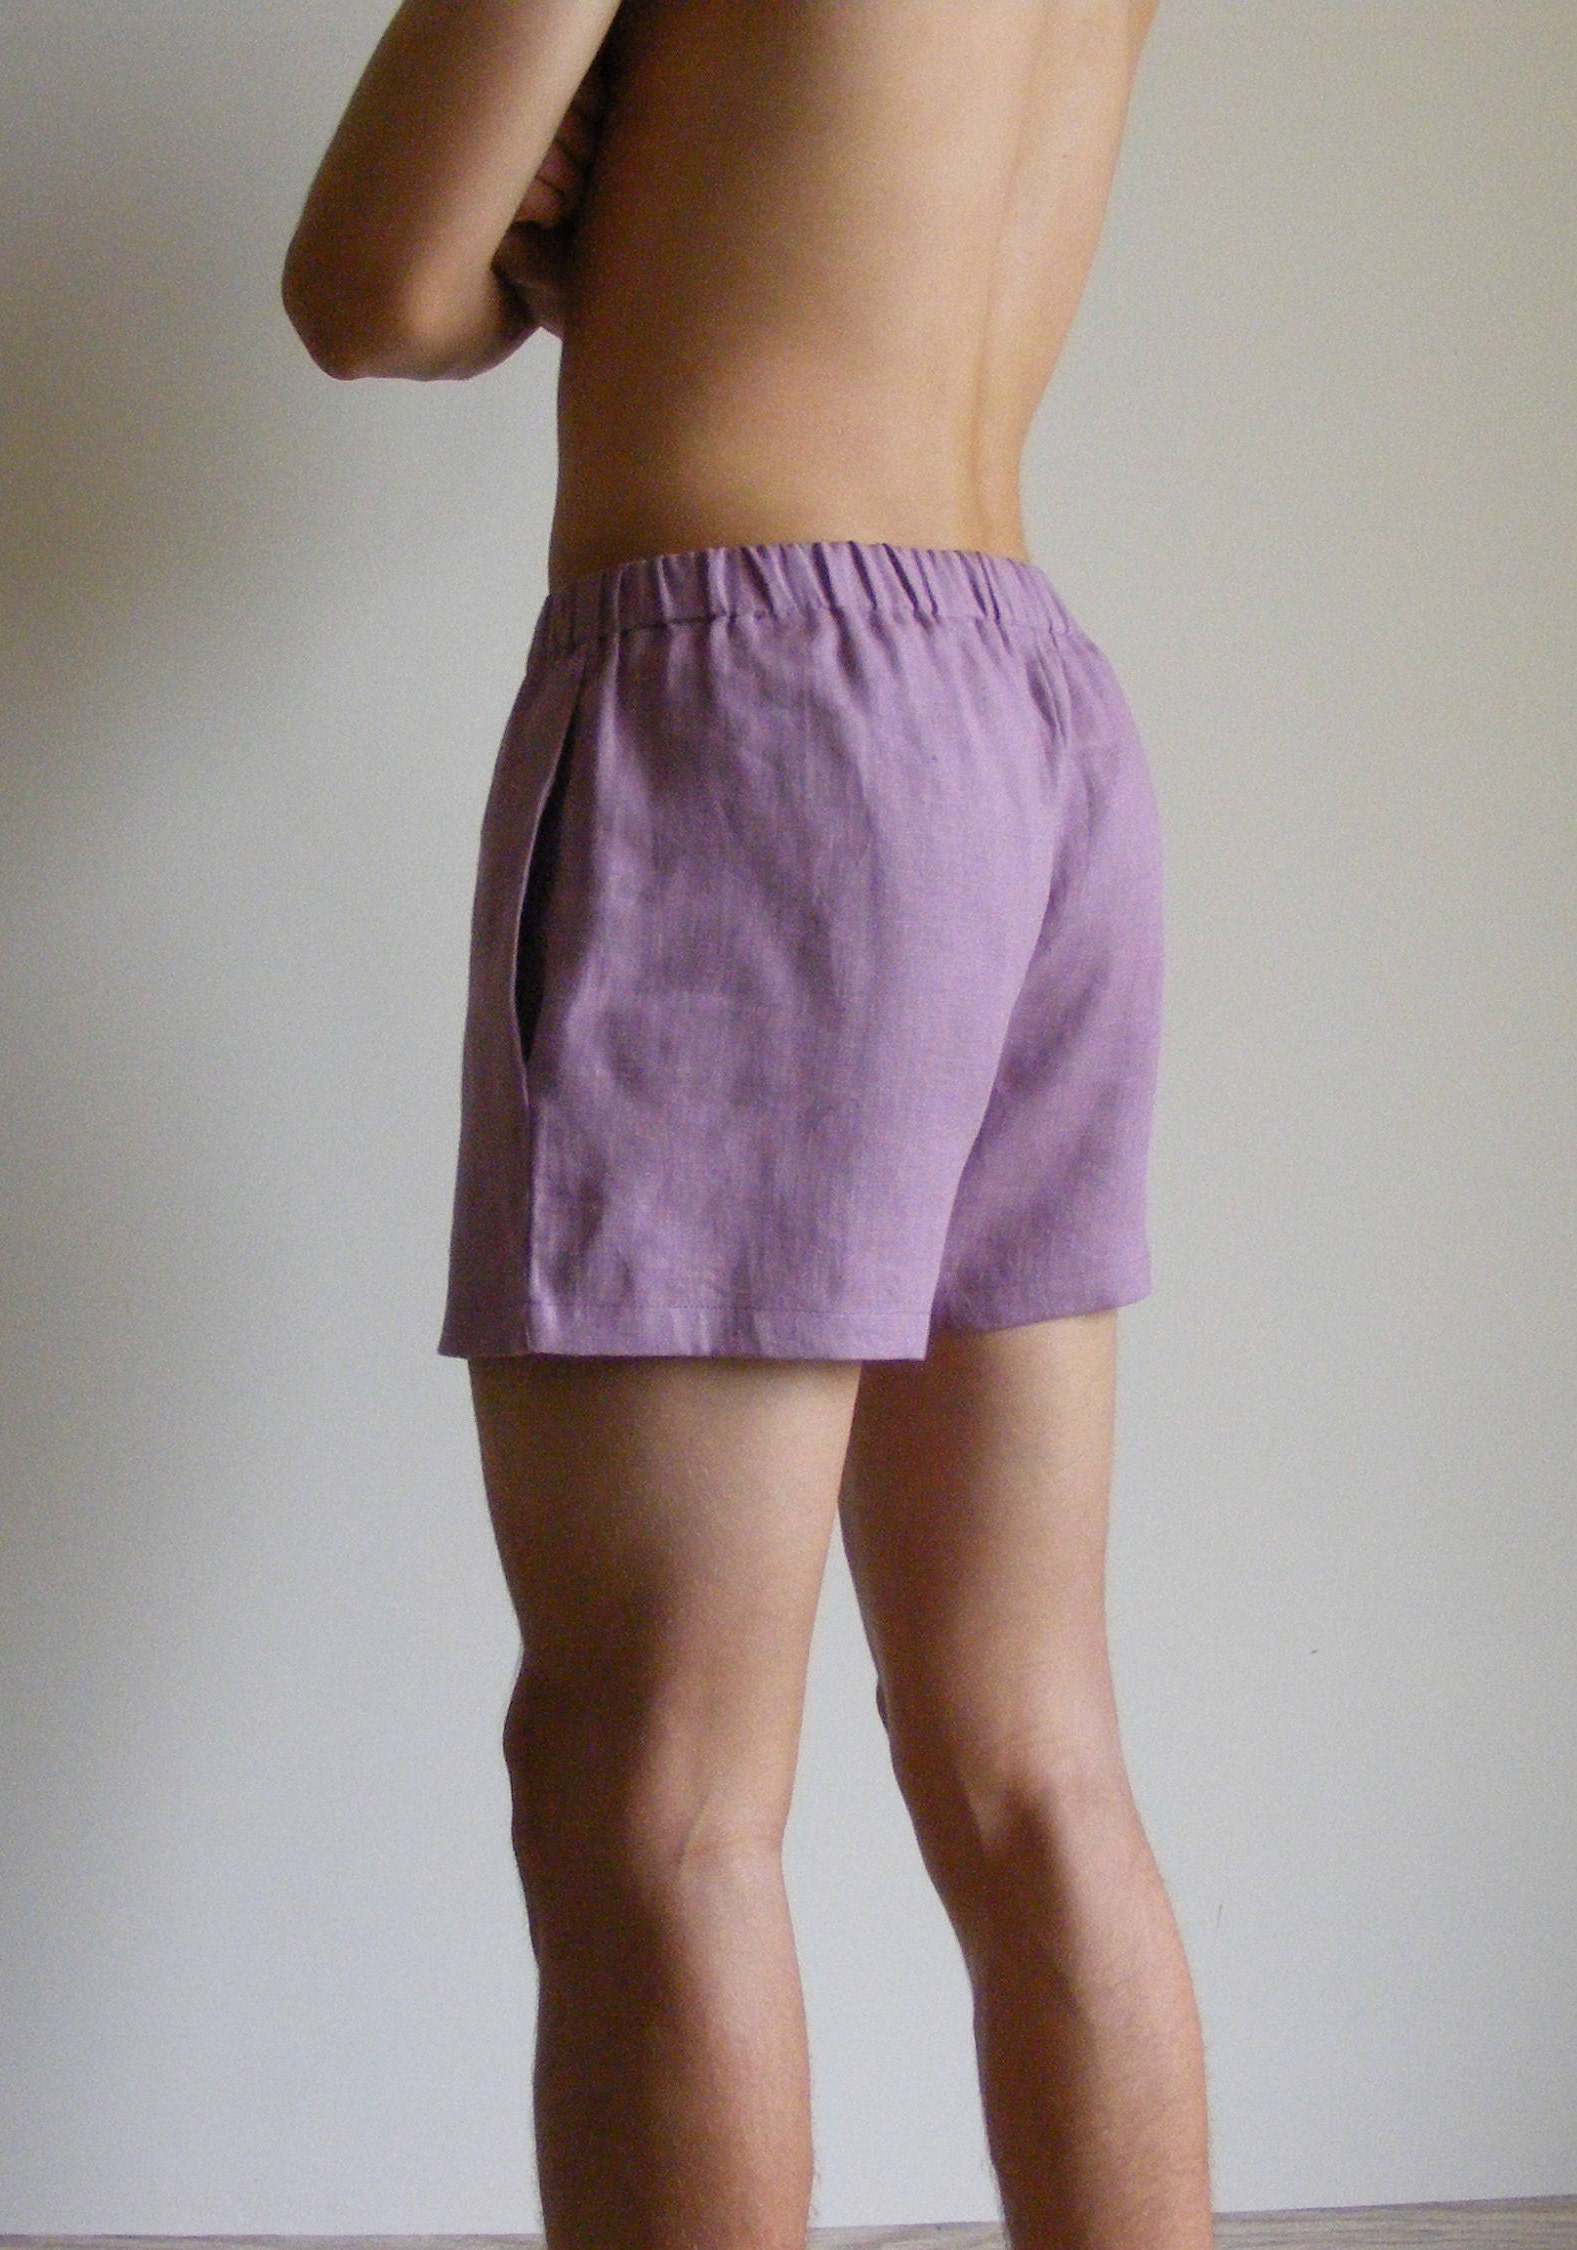 Simply Mens Linen Shorts / Dusty Pink / 100% Linen / Men's Linen Shorts / Boxers / Boxer Shorts